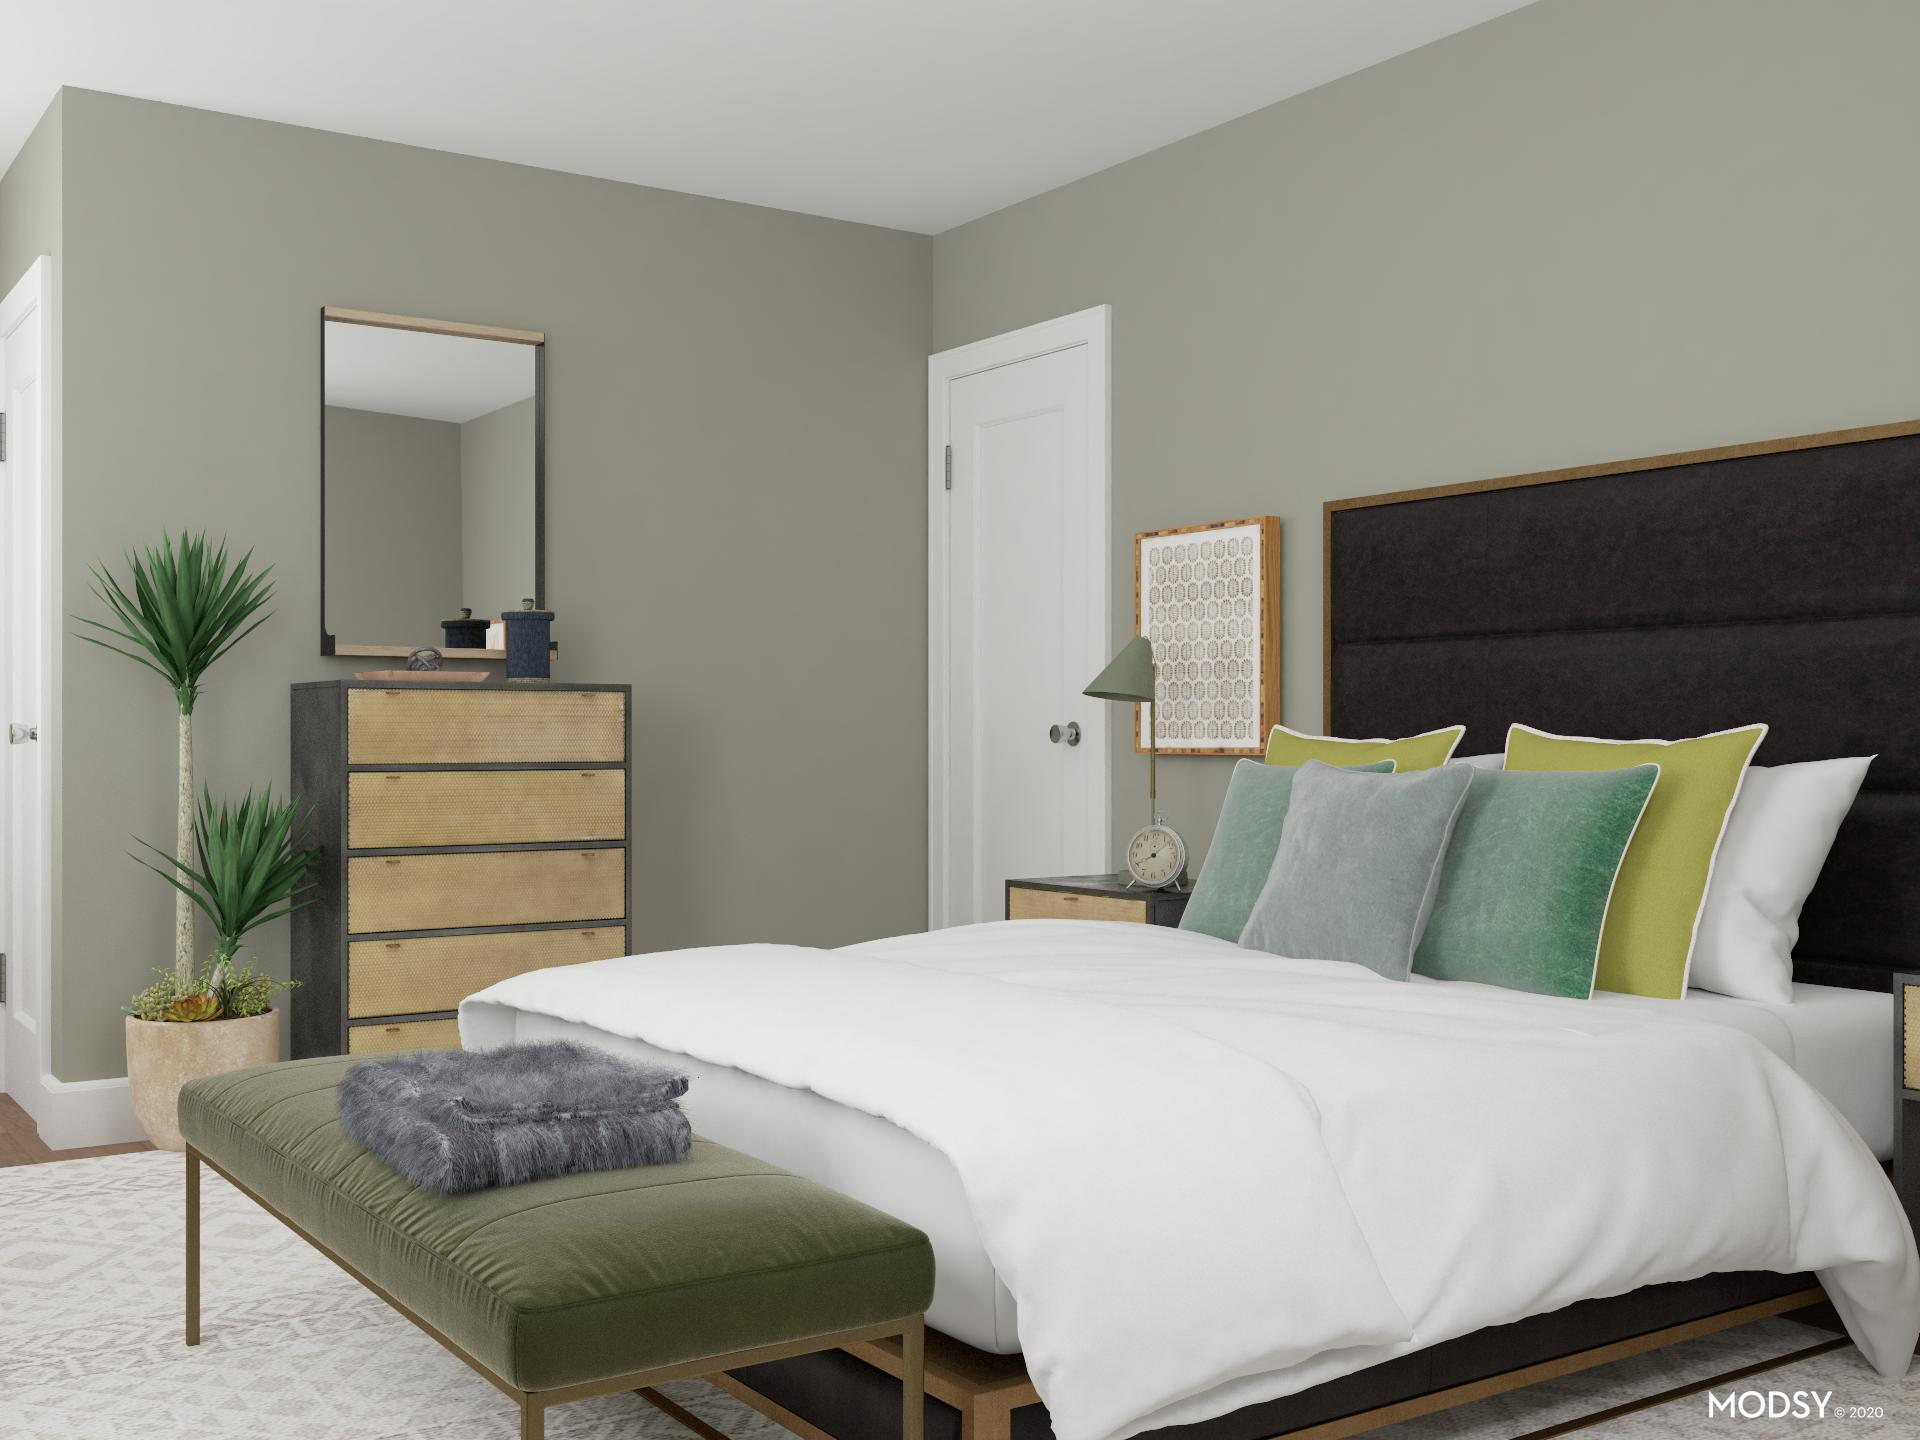 Green Is The New Neutral: Bedroom Design | Minimalist ... on Neutral Minimalist Bedroom Ideas  id=17930